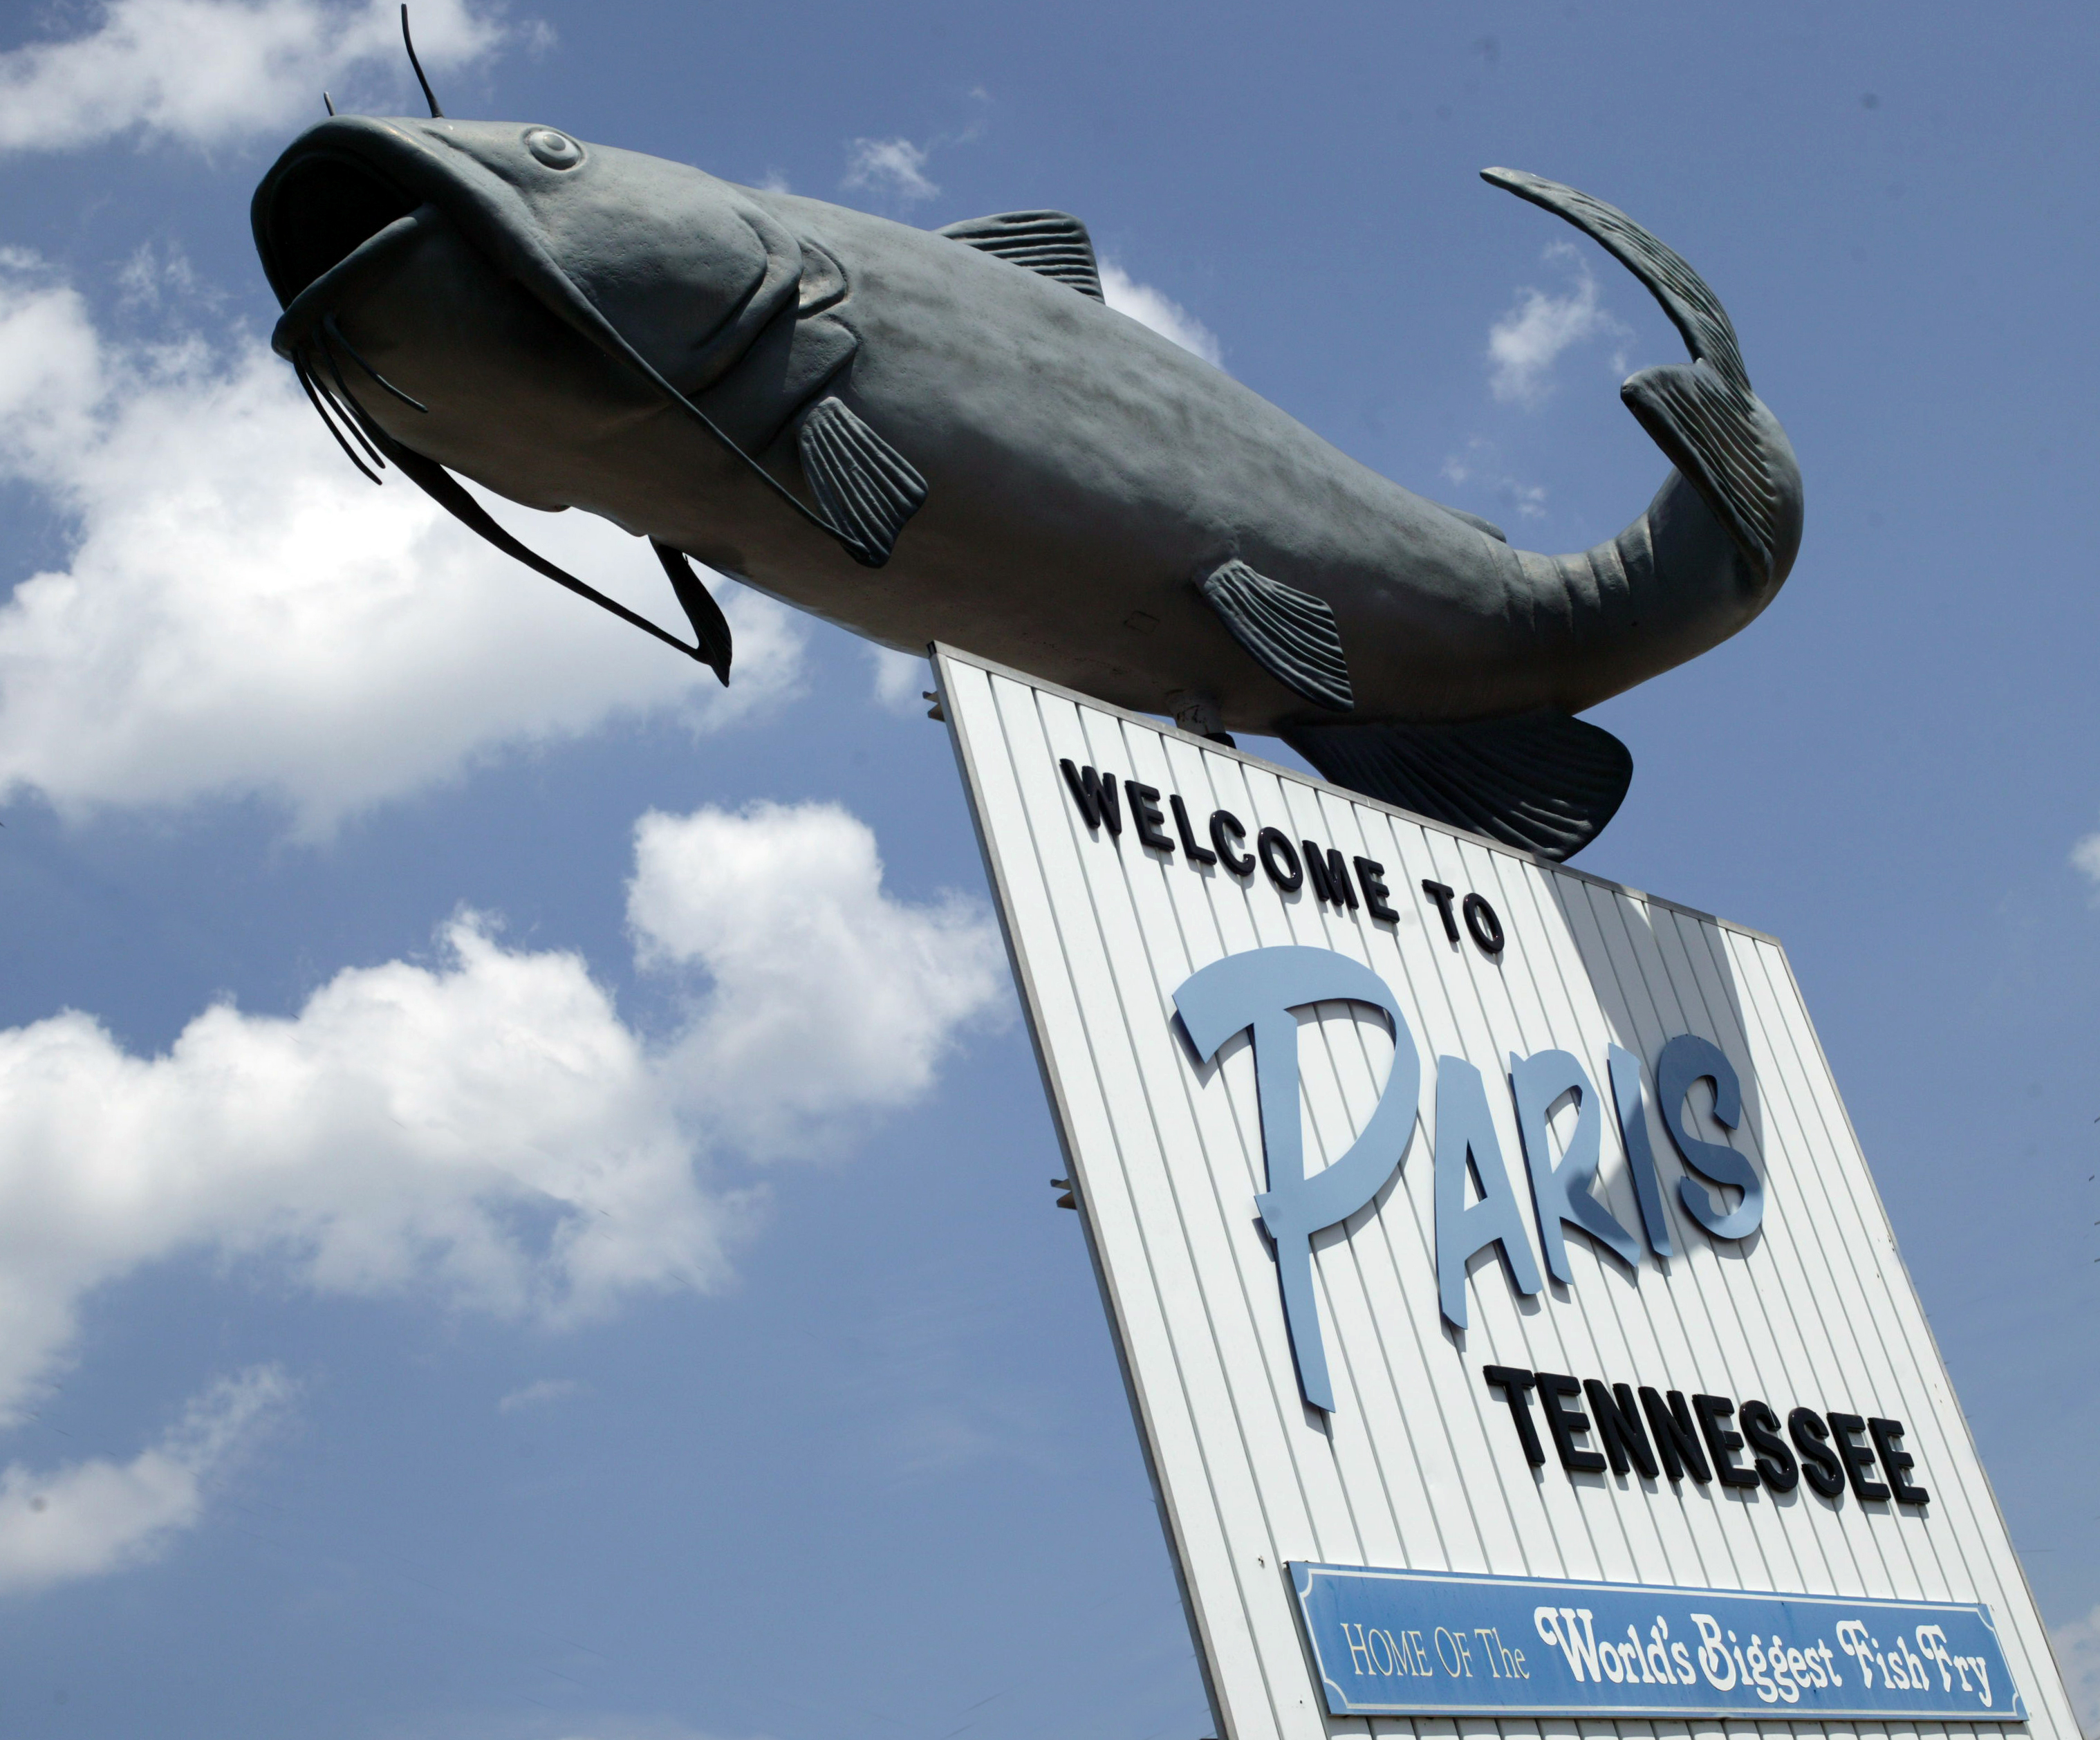 Worlds biggest fish fry paris henry county chamber of commerce is a premier event for paris henry county and west tennessee the last full week of april annually attracts people locally as well as nationally sciox Choice Image